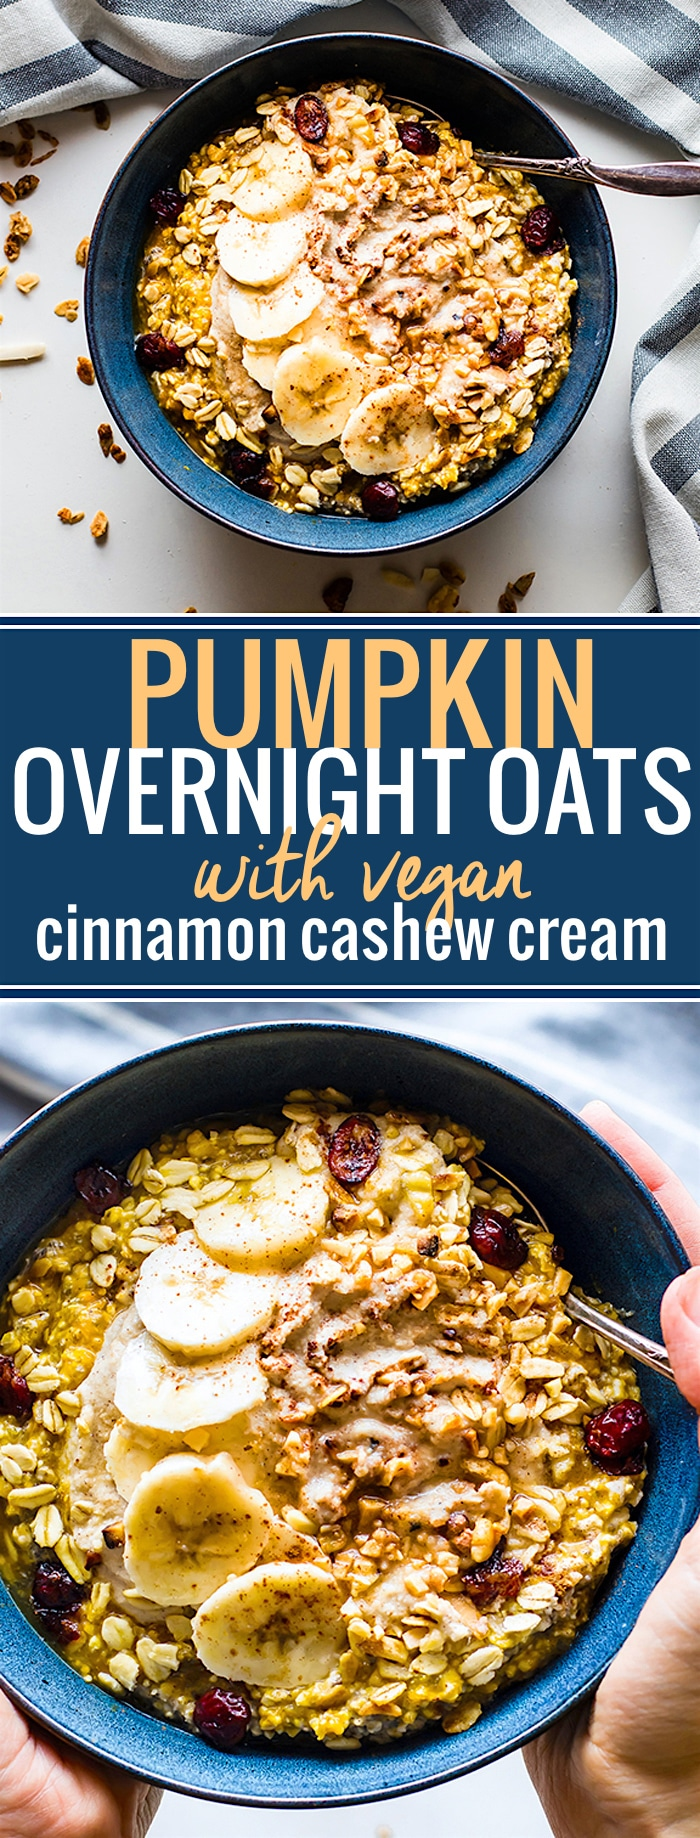 Pumpkin Overnight Oats with Cinnamon Cashew Cream and cranberry nut topping! A vegan pumpkin overnight oats recipe for Fall breakfasts. Gluten free, easy. @cottercrunch